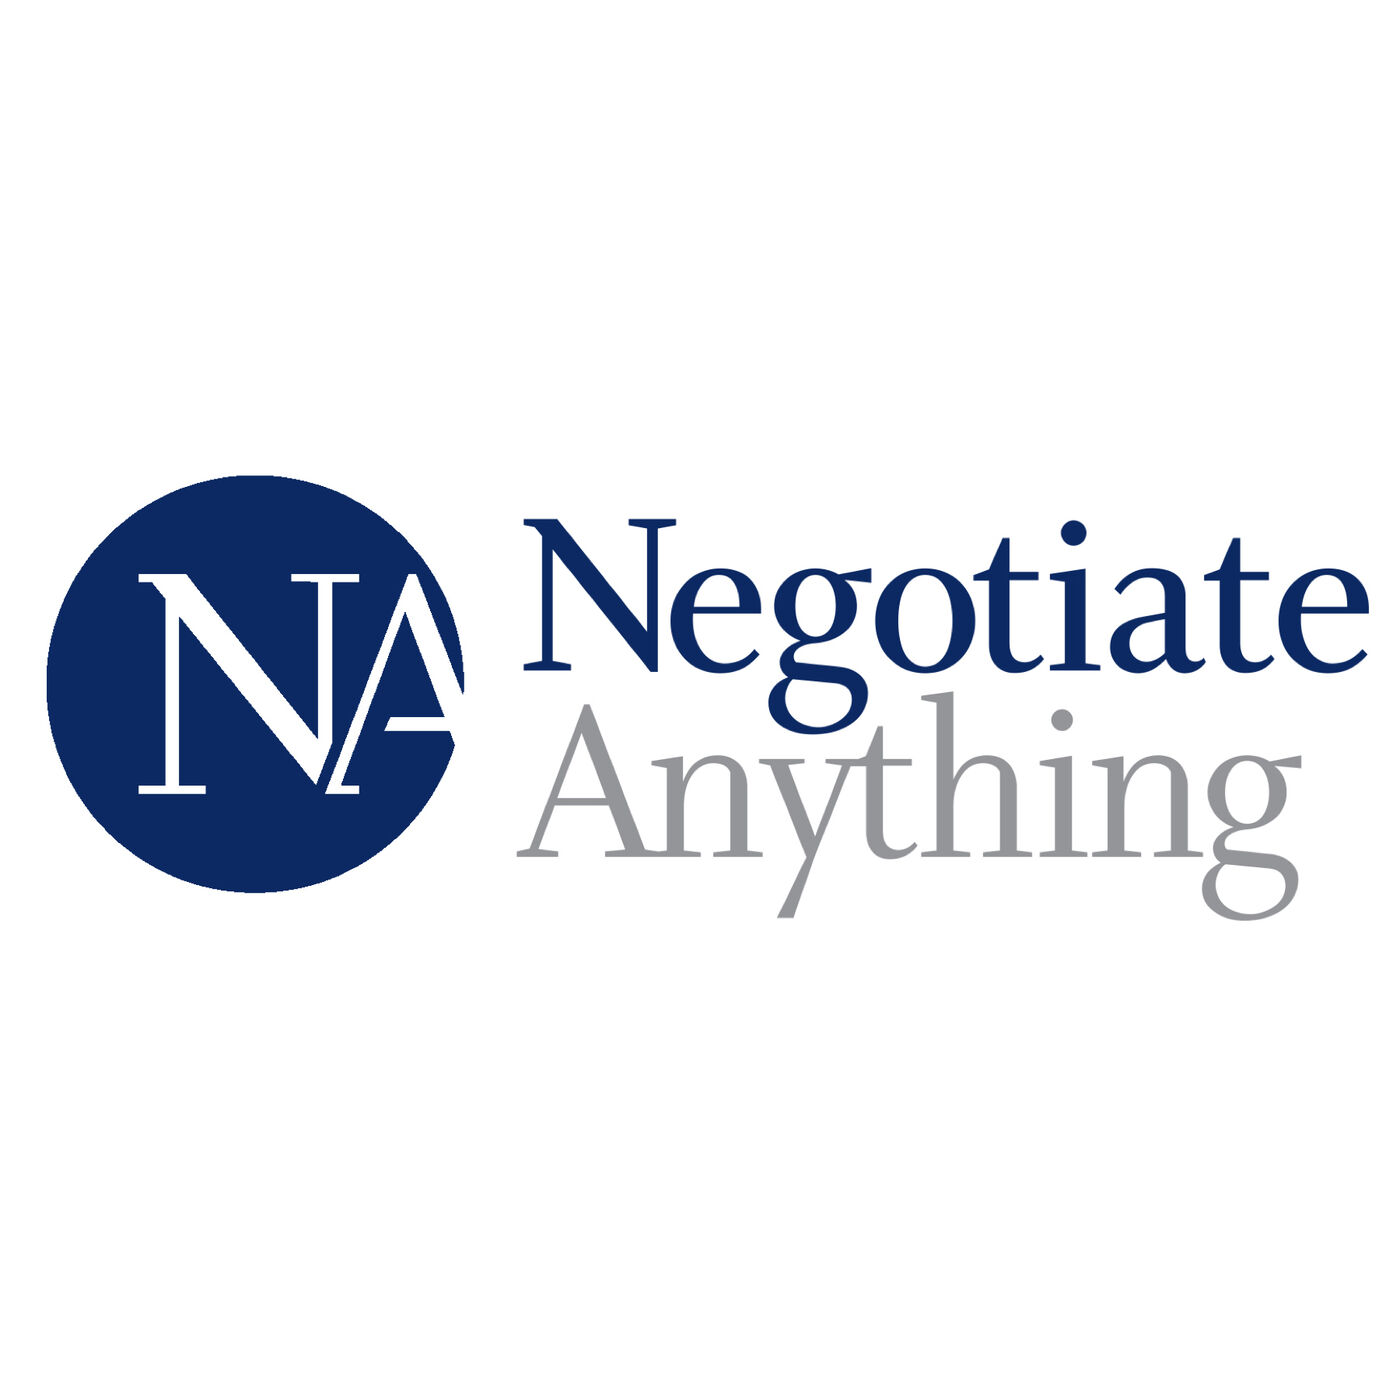 PODCAST Negotiate Anything podcast